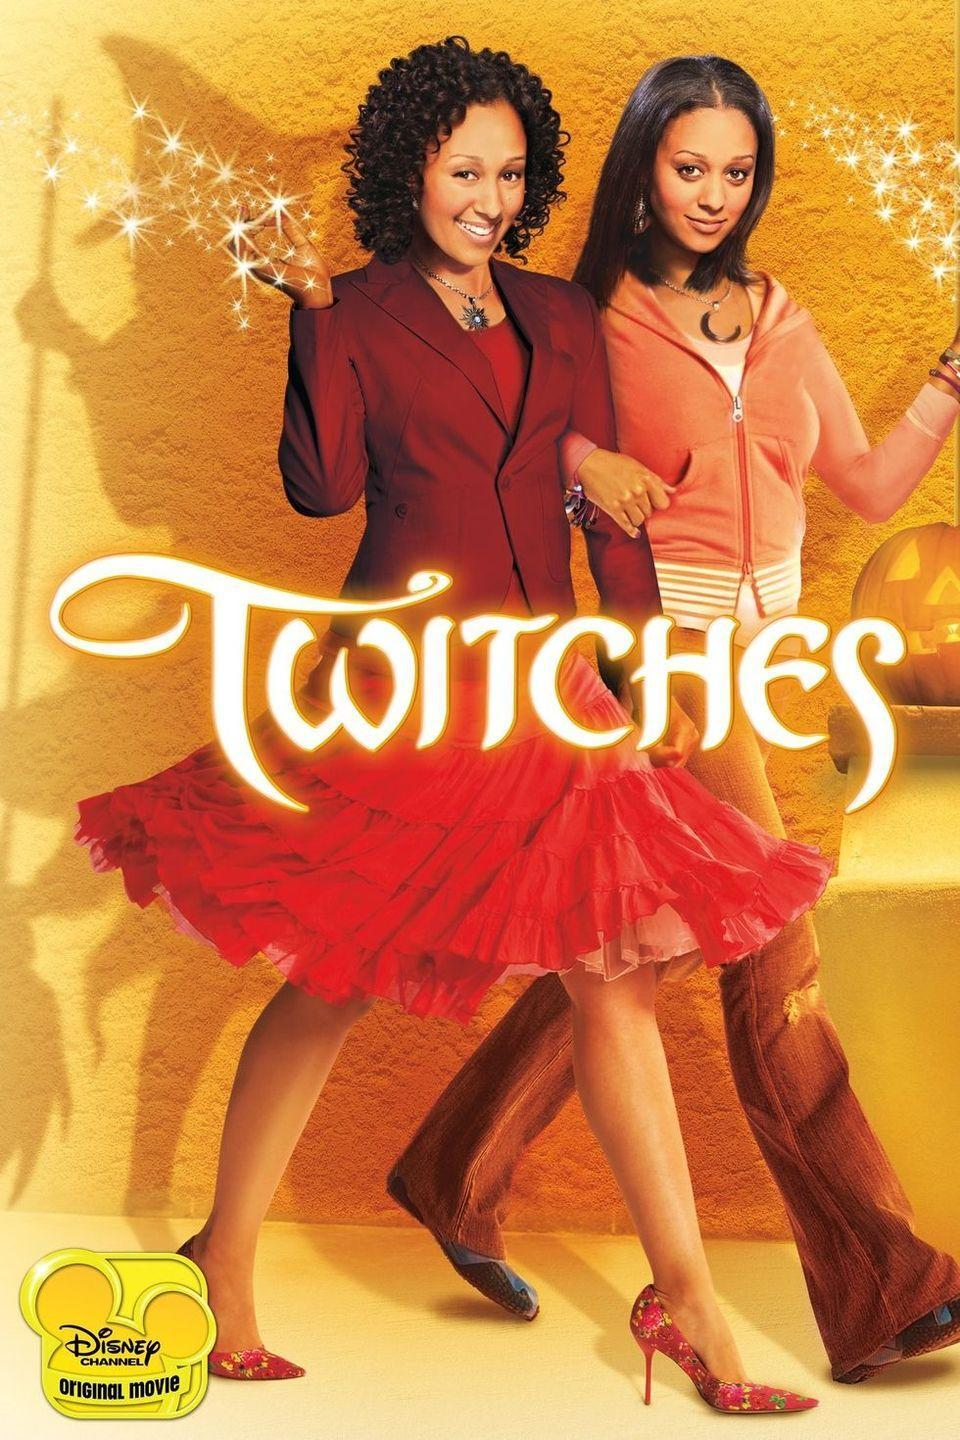 """<p>If you loved the classic '90s sitcom <em>Sister, Sister</em>, then you'll love <em>Twitches.</em> In a lot of ways, the storyline is basically the same thing ... but with magic. In this film, Alex and Camryn (<strong>Tia Mowry-Hardrict </strong>and<strong> Tamera Mowry-Housley</strong>) reunite and find out they're witches who must save the magical kingdom where they were born.</p><p><a class=""""link rapid-noclick-resp"""" href=""""https://go.redirectingat.com?id=74968X1596630&url=https%3A%2F%2Fwww.disneyplus.com%2Fmovies%2Ftwitches%2F3jmJ2lNPGpS7&sref=https%3A%2F%2Fwww.goodhousekeeping.com%2Flife%2Fentertainment%2Fg33651563%2Fdisney-halloween-movies%2F"""" rel=""""nofollow noopener"""" target=""""_blank"""" data-ylk=""""slk:WATCH NOW"""">WATCH NOW</a></p>"""